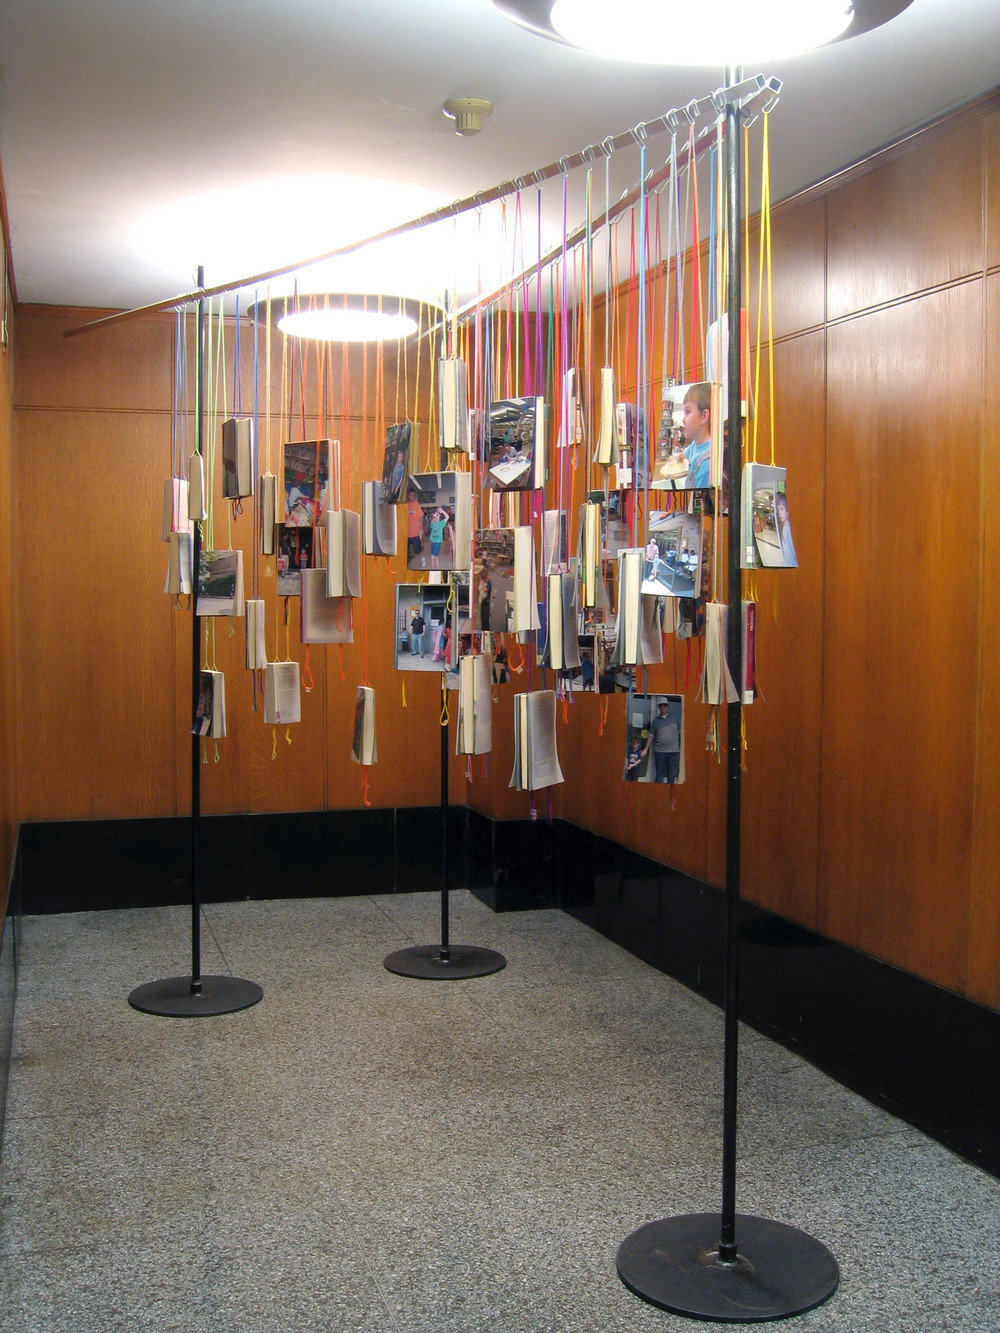 bioGRAPHY: A Site Specific Project for the Brooklyn Public Library, 2005, 60 library books, paper, photo, yarn, tape and metal, 7 x 4 x 11' (Installation view)